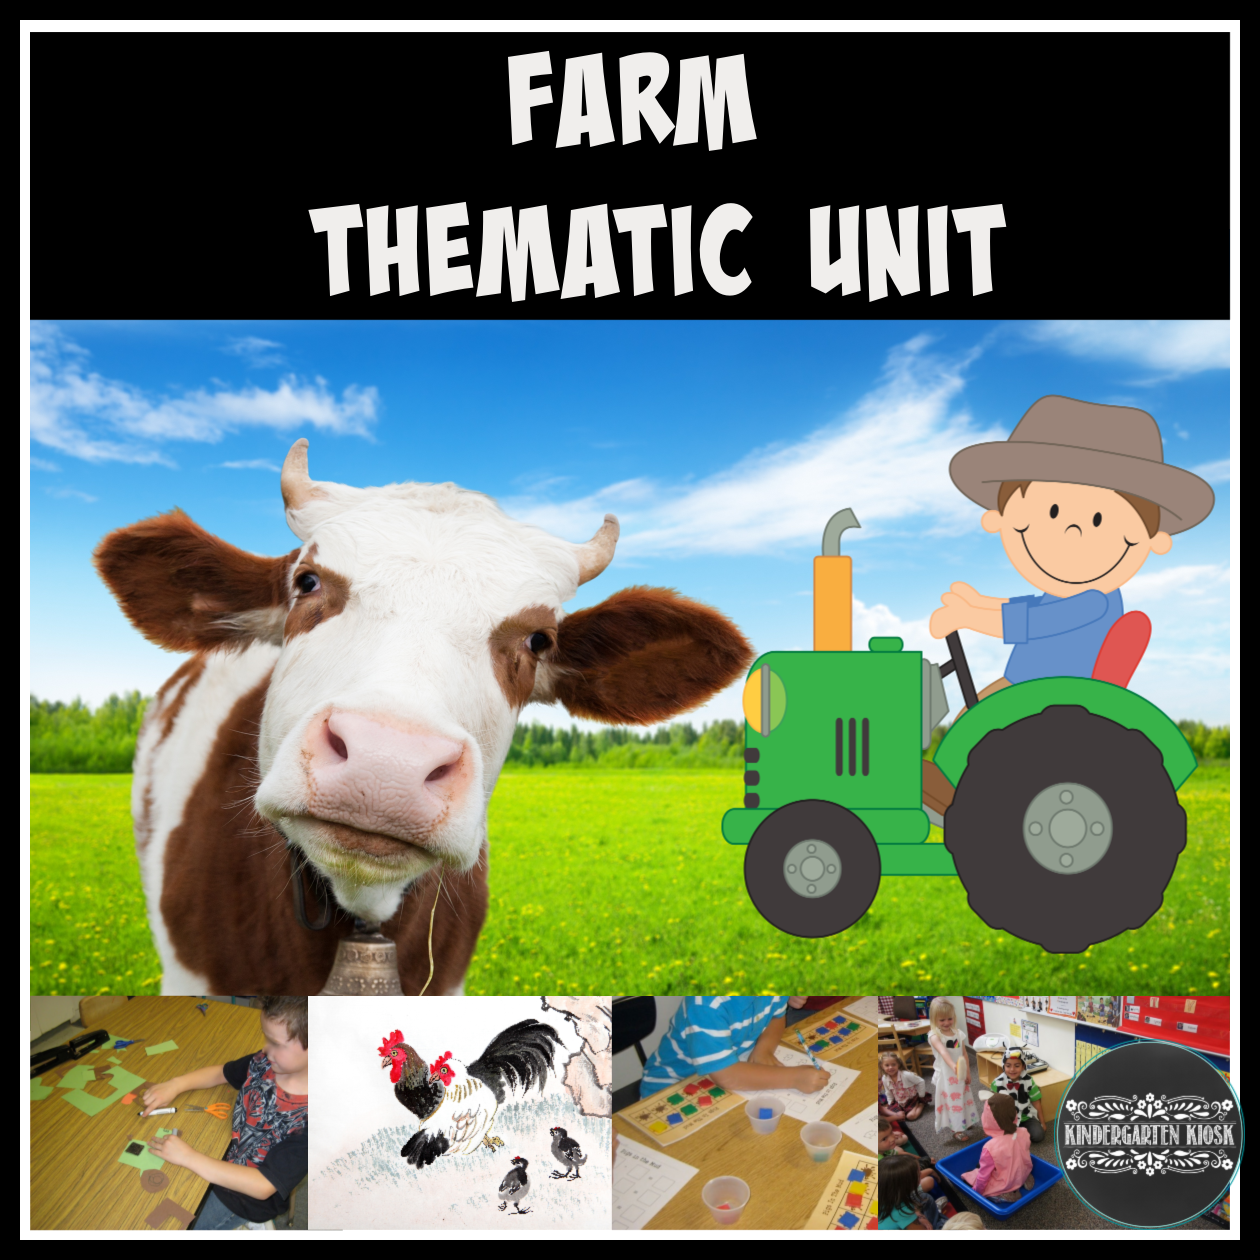 Farm-thematic-unit.png